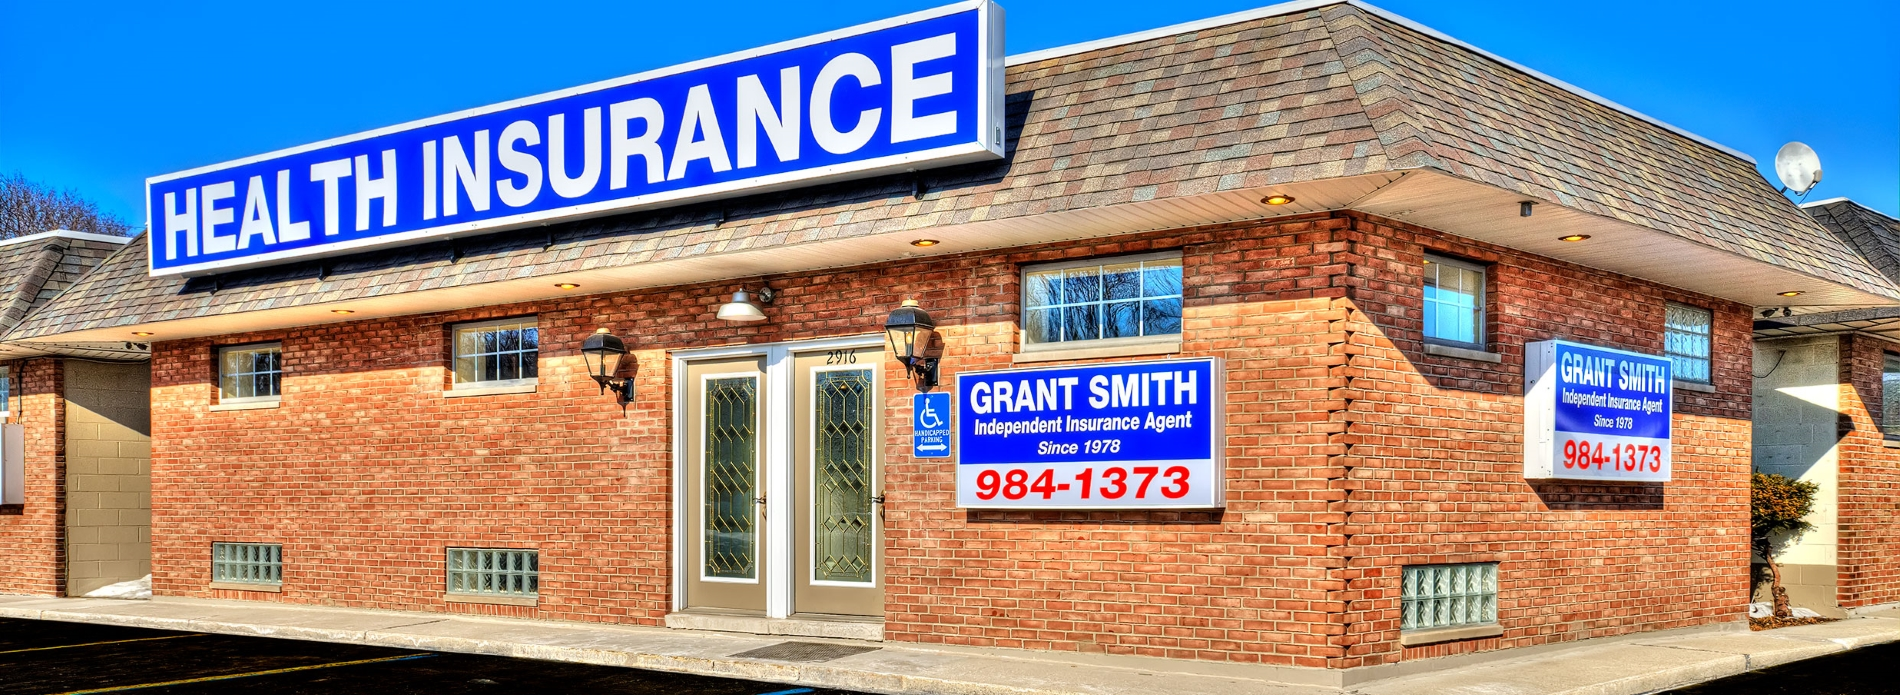 Grant Smith - Local Independent Health Insurance Agent